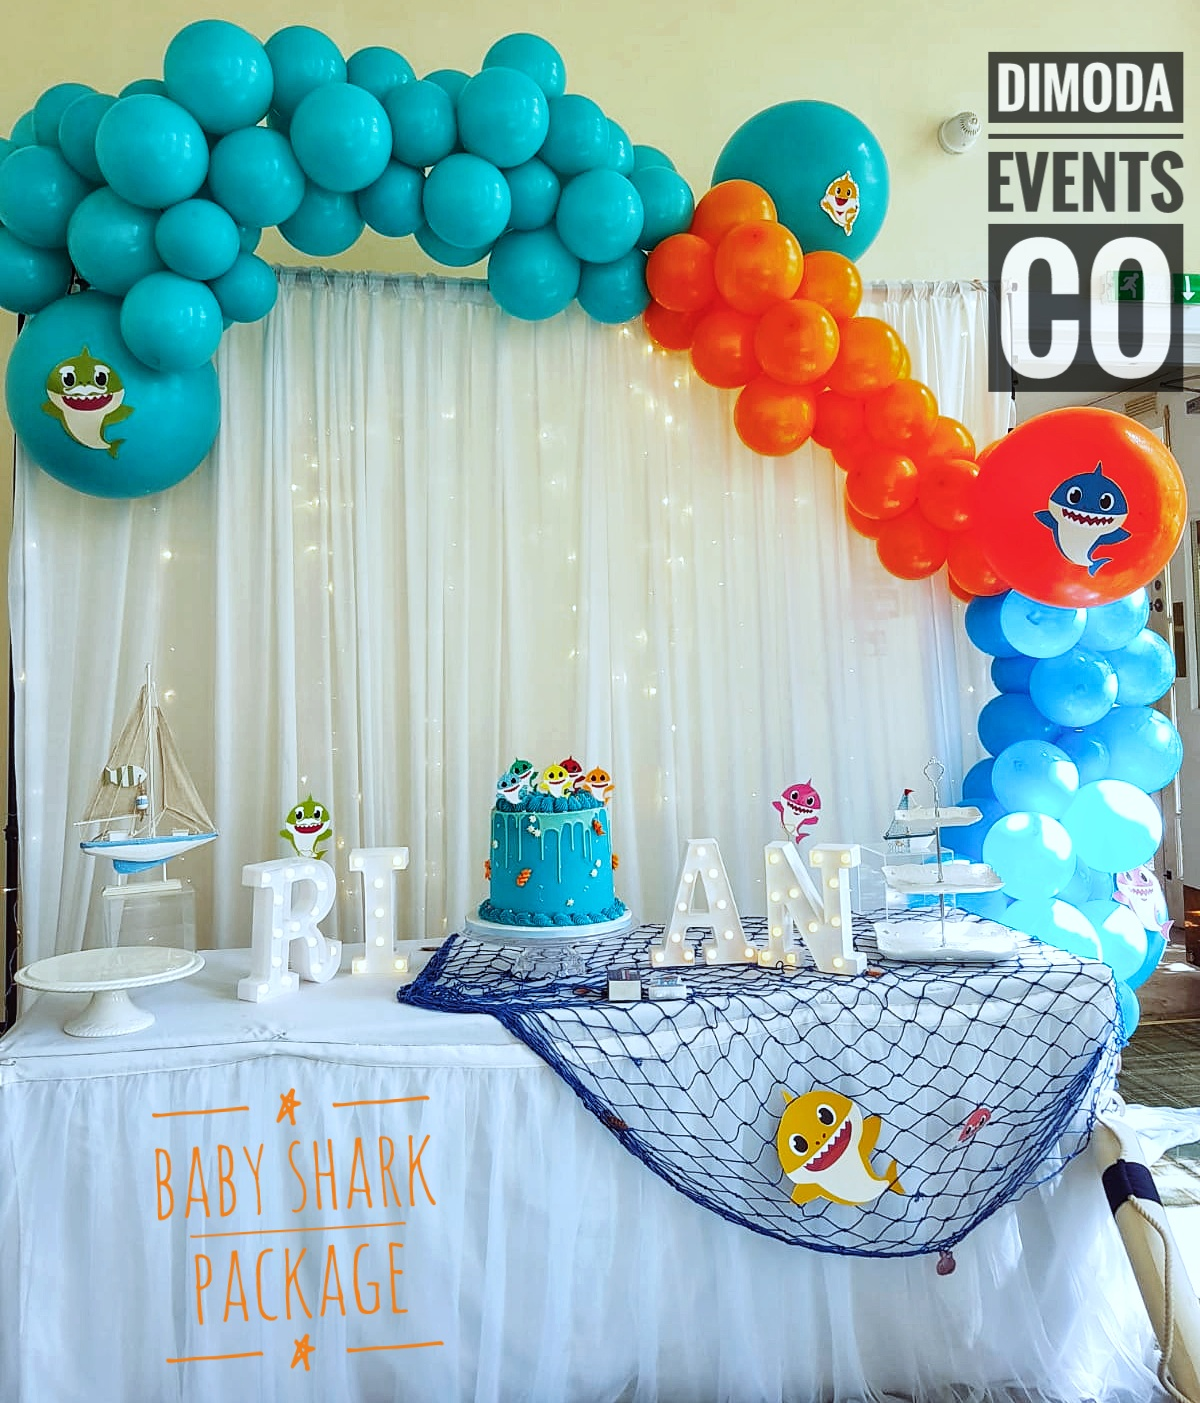 Baby Shark Cake Table Package